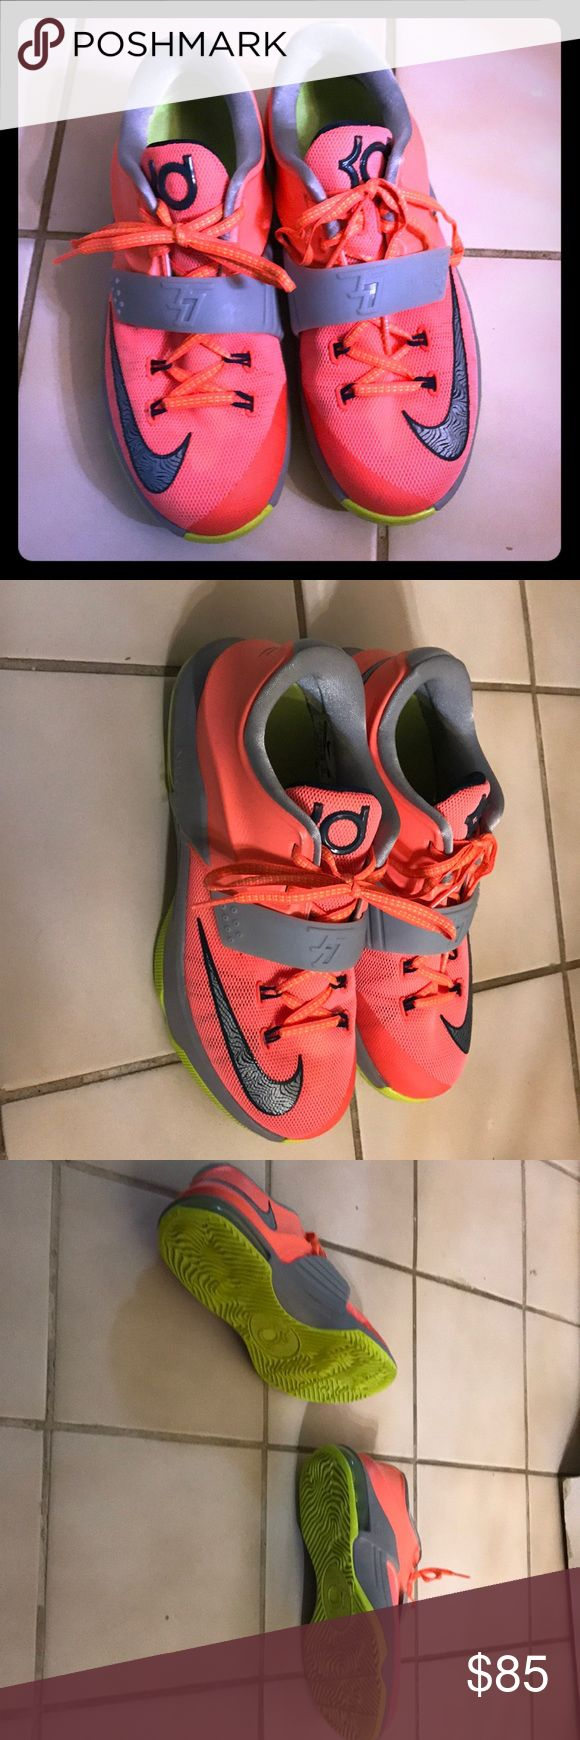 KD basketball shoes KD basketball shoes. Only worn a couple times and great coral color. Nike Shoes Sneakers